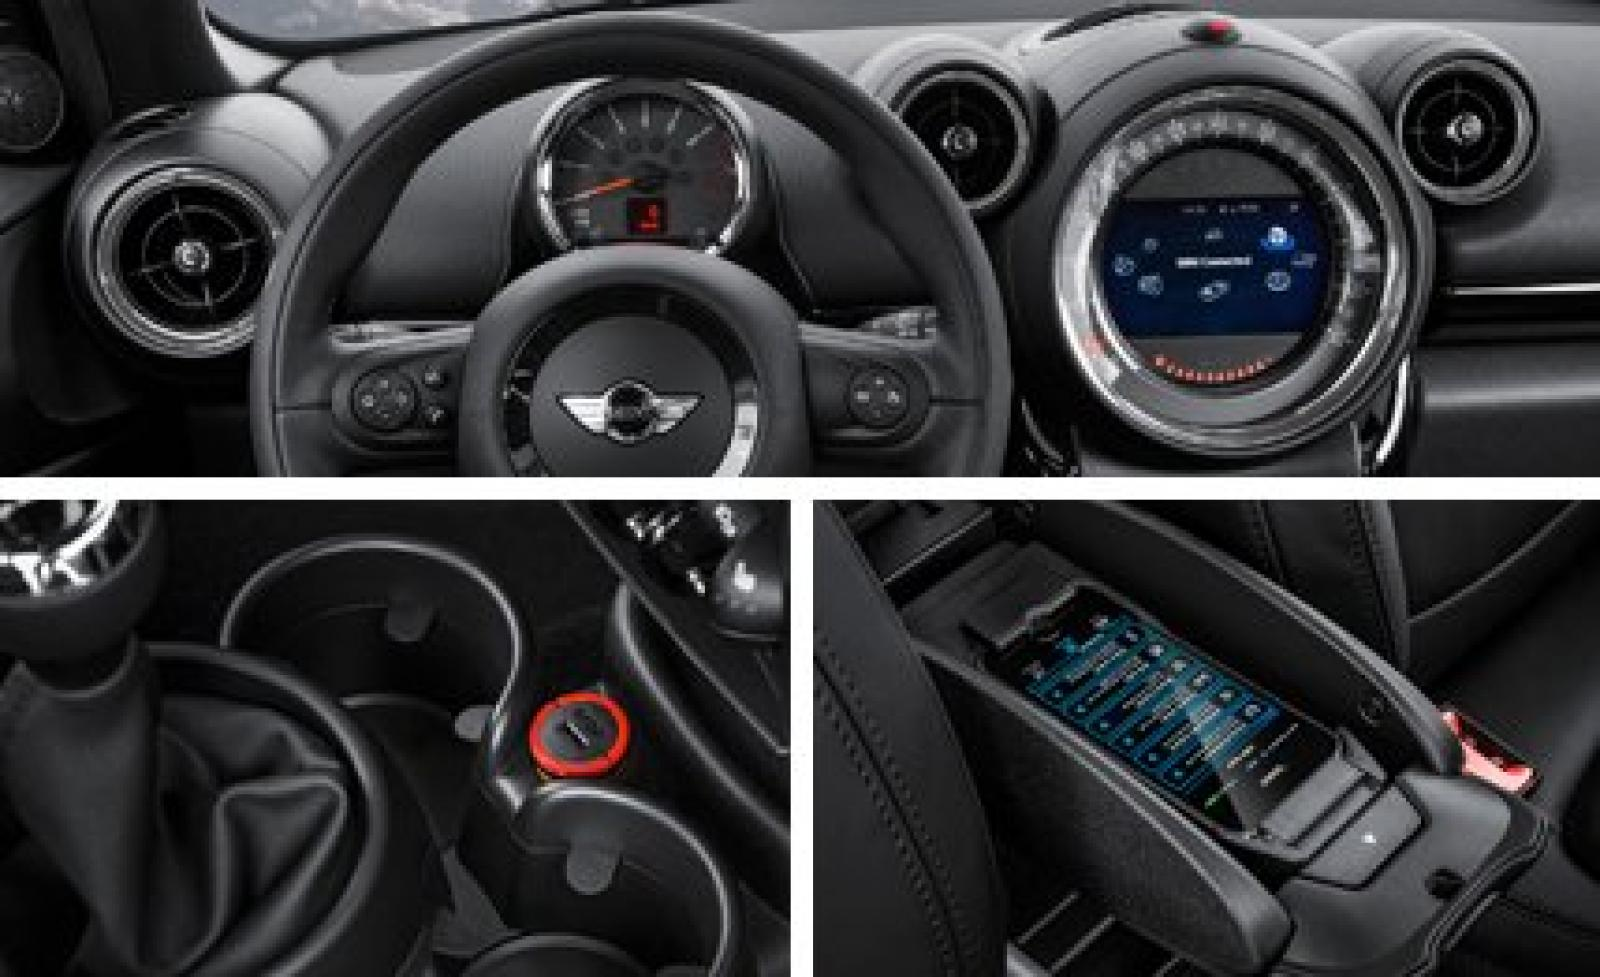 2015 mini cooper paceman interior images galleries with a bite. Black Bedroom Furniture Sets. Home Design Ideas